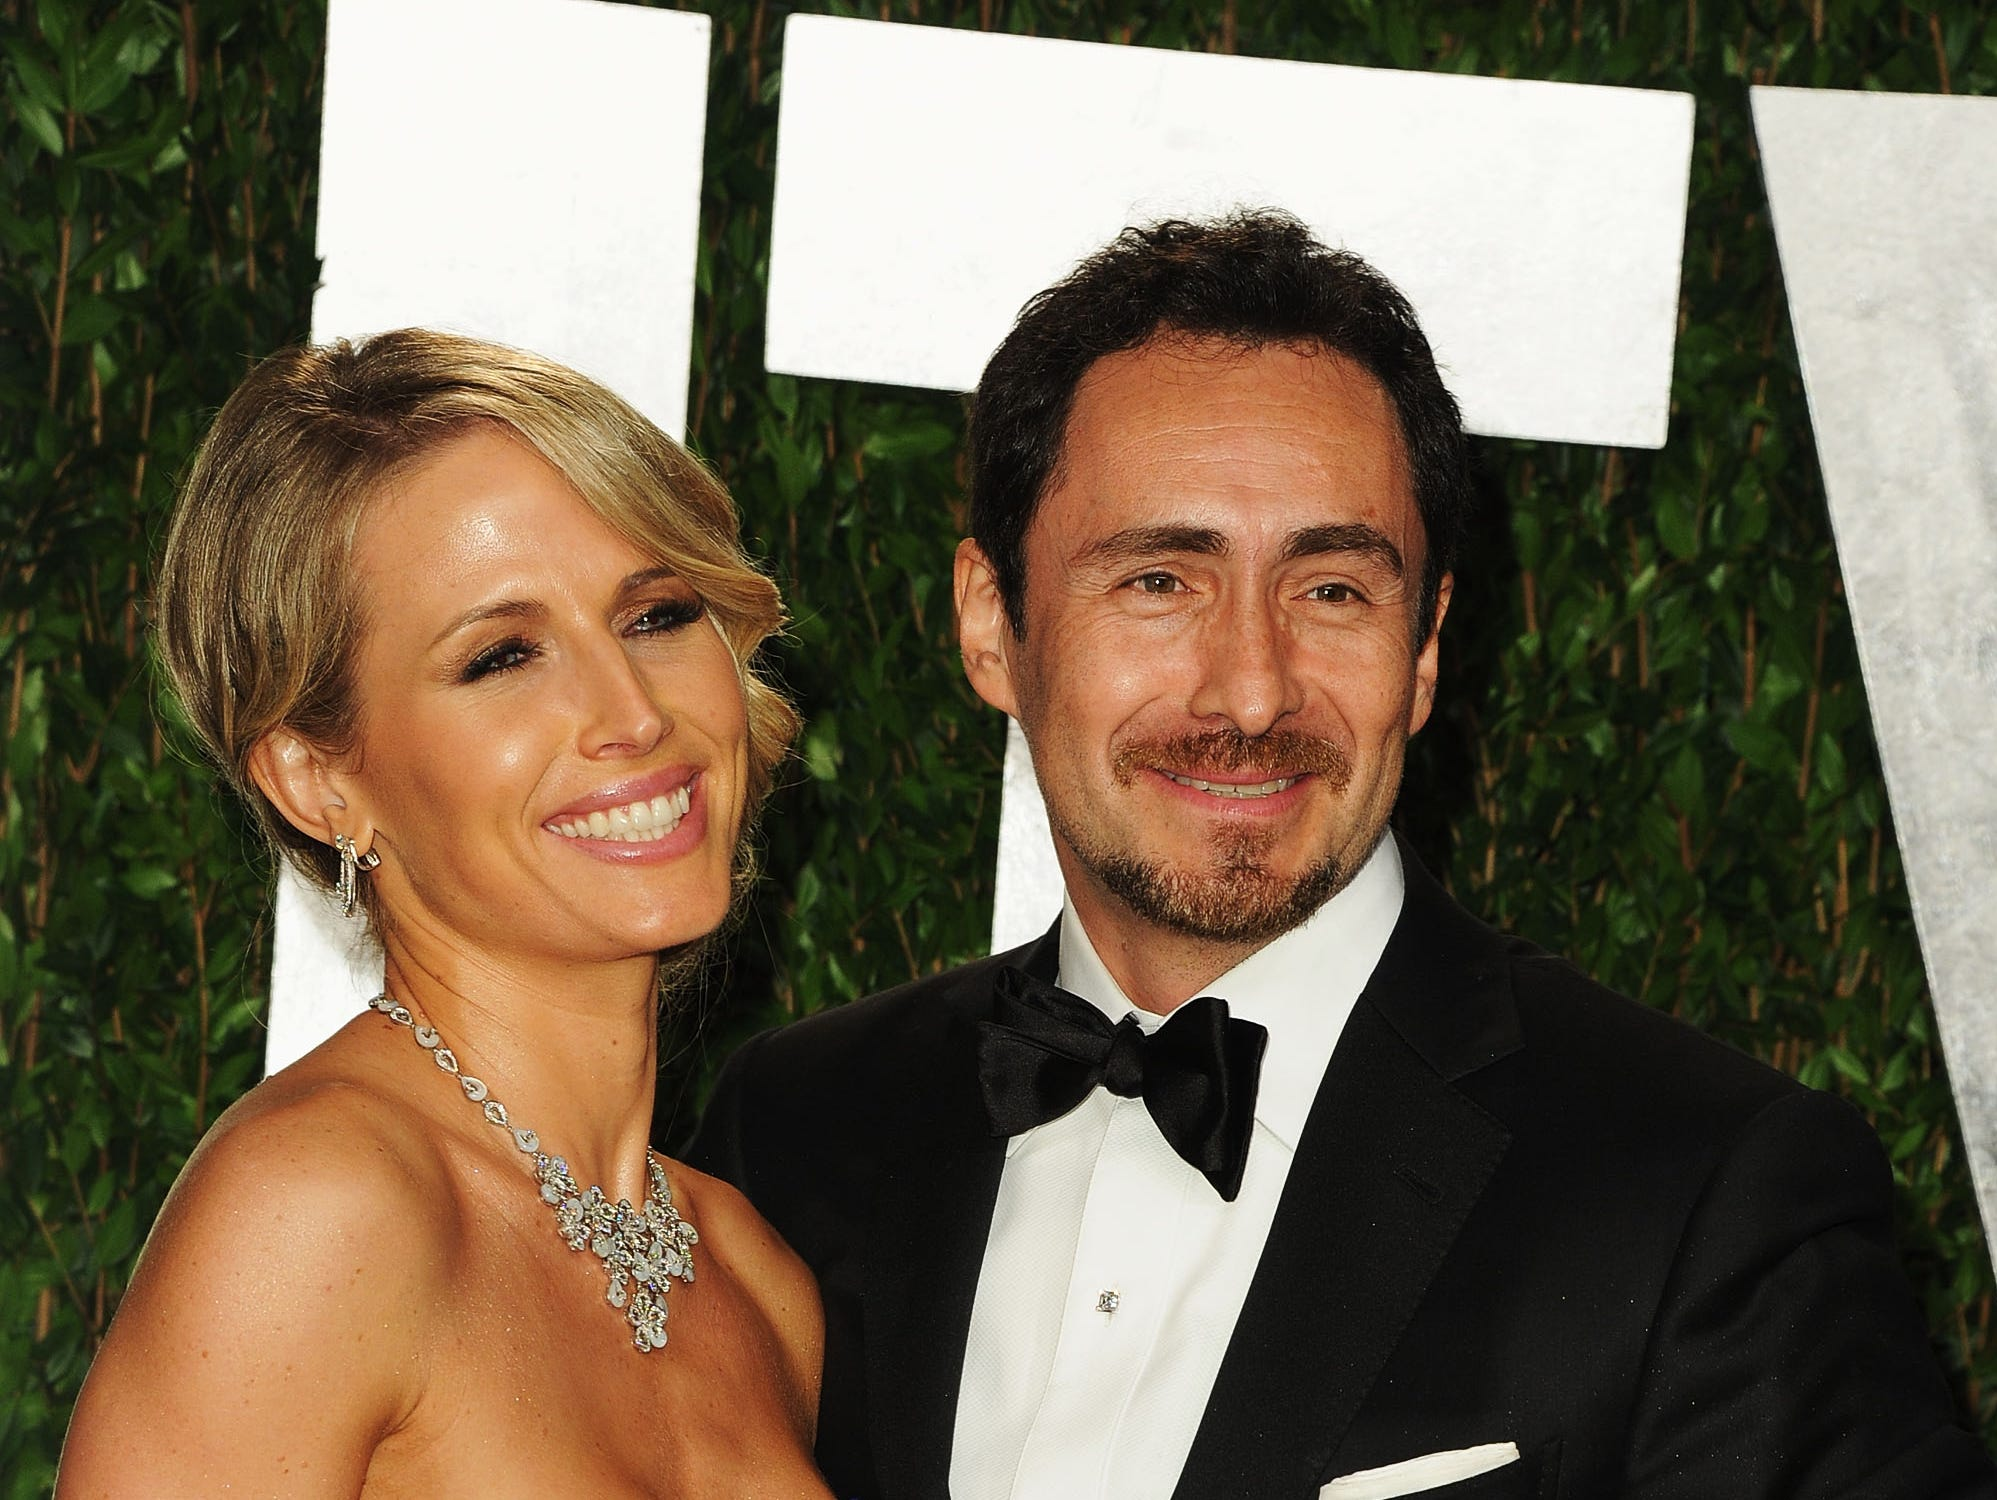 Demian Bichir and Stefanie Sherk arrive at the 2012 Vanity Fair Oscar Party hosted by Graydon Carter at Sunset Tower on February 26, 2012, in West Hollywood, California.